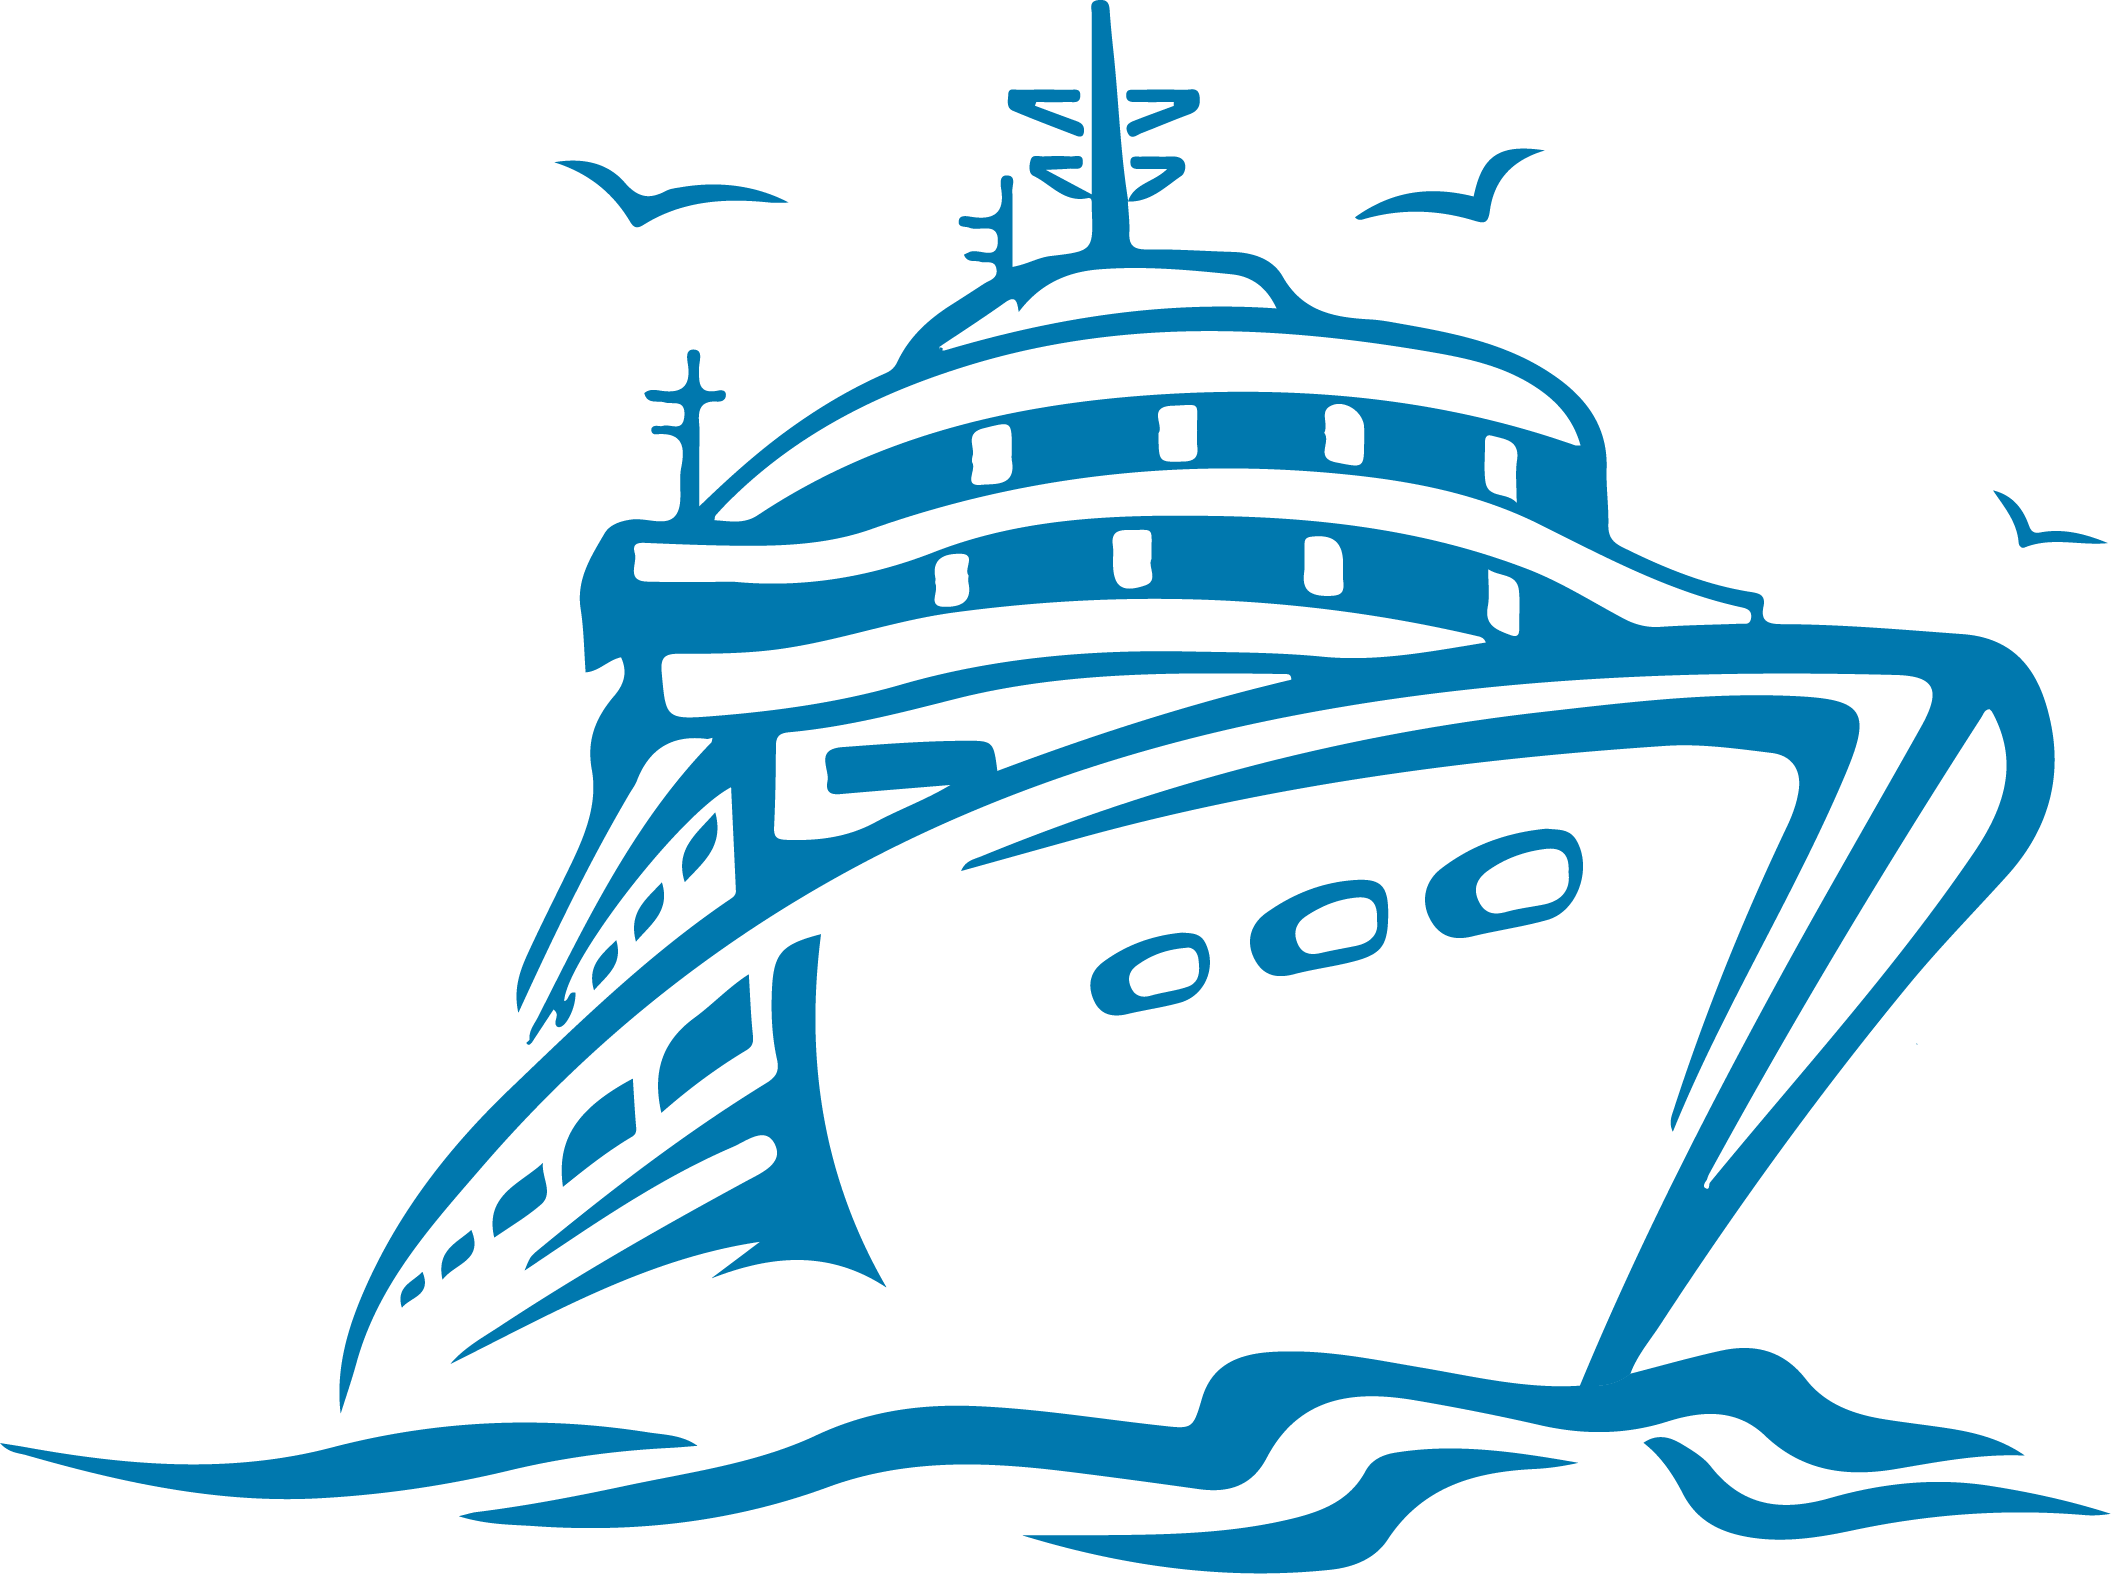 clipart royalty free library Aida ship schedule and. Cruise clipart